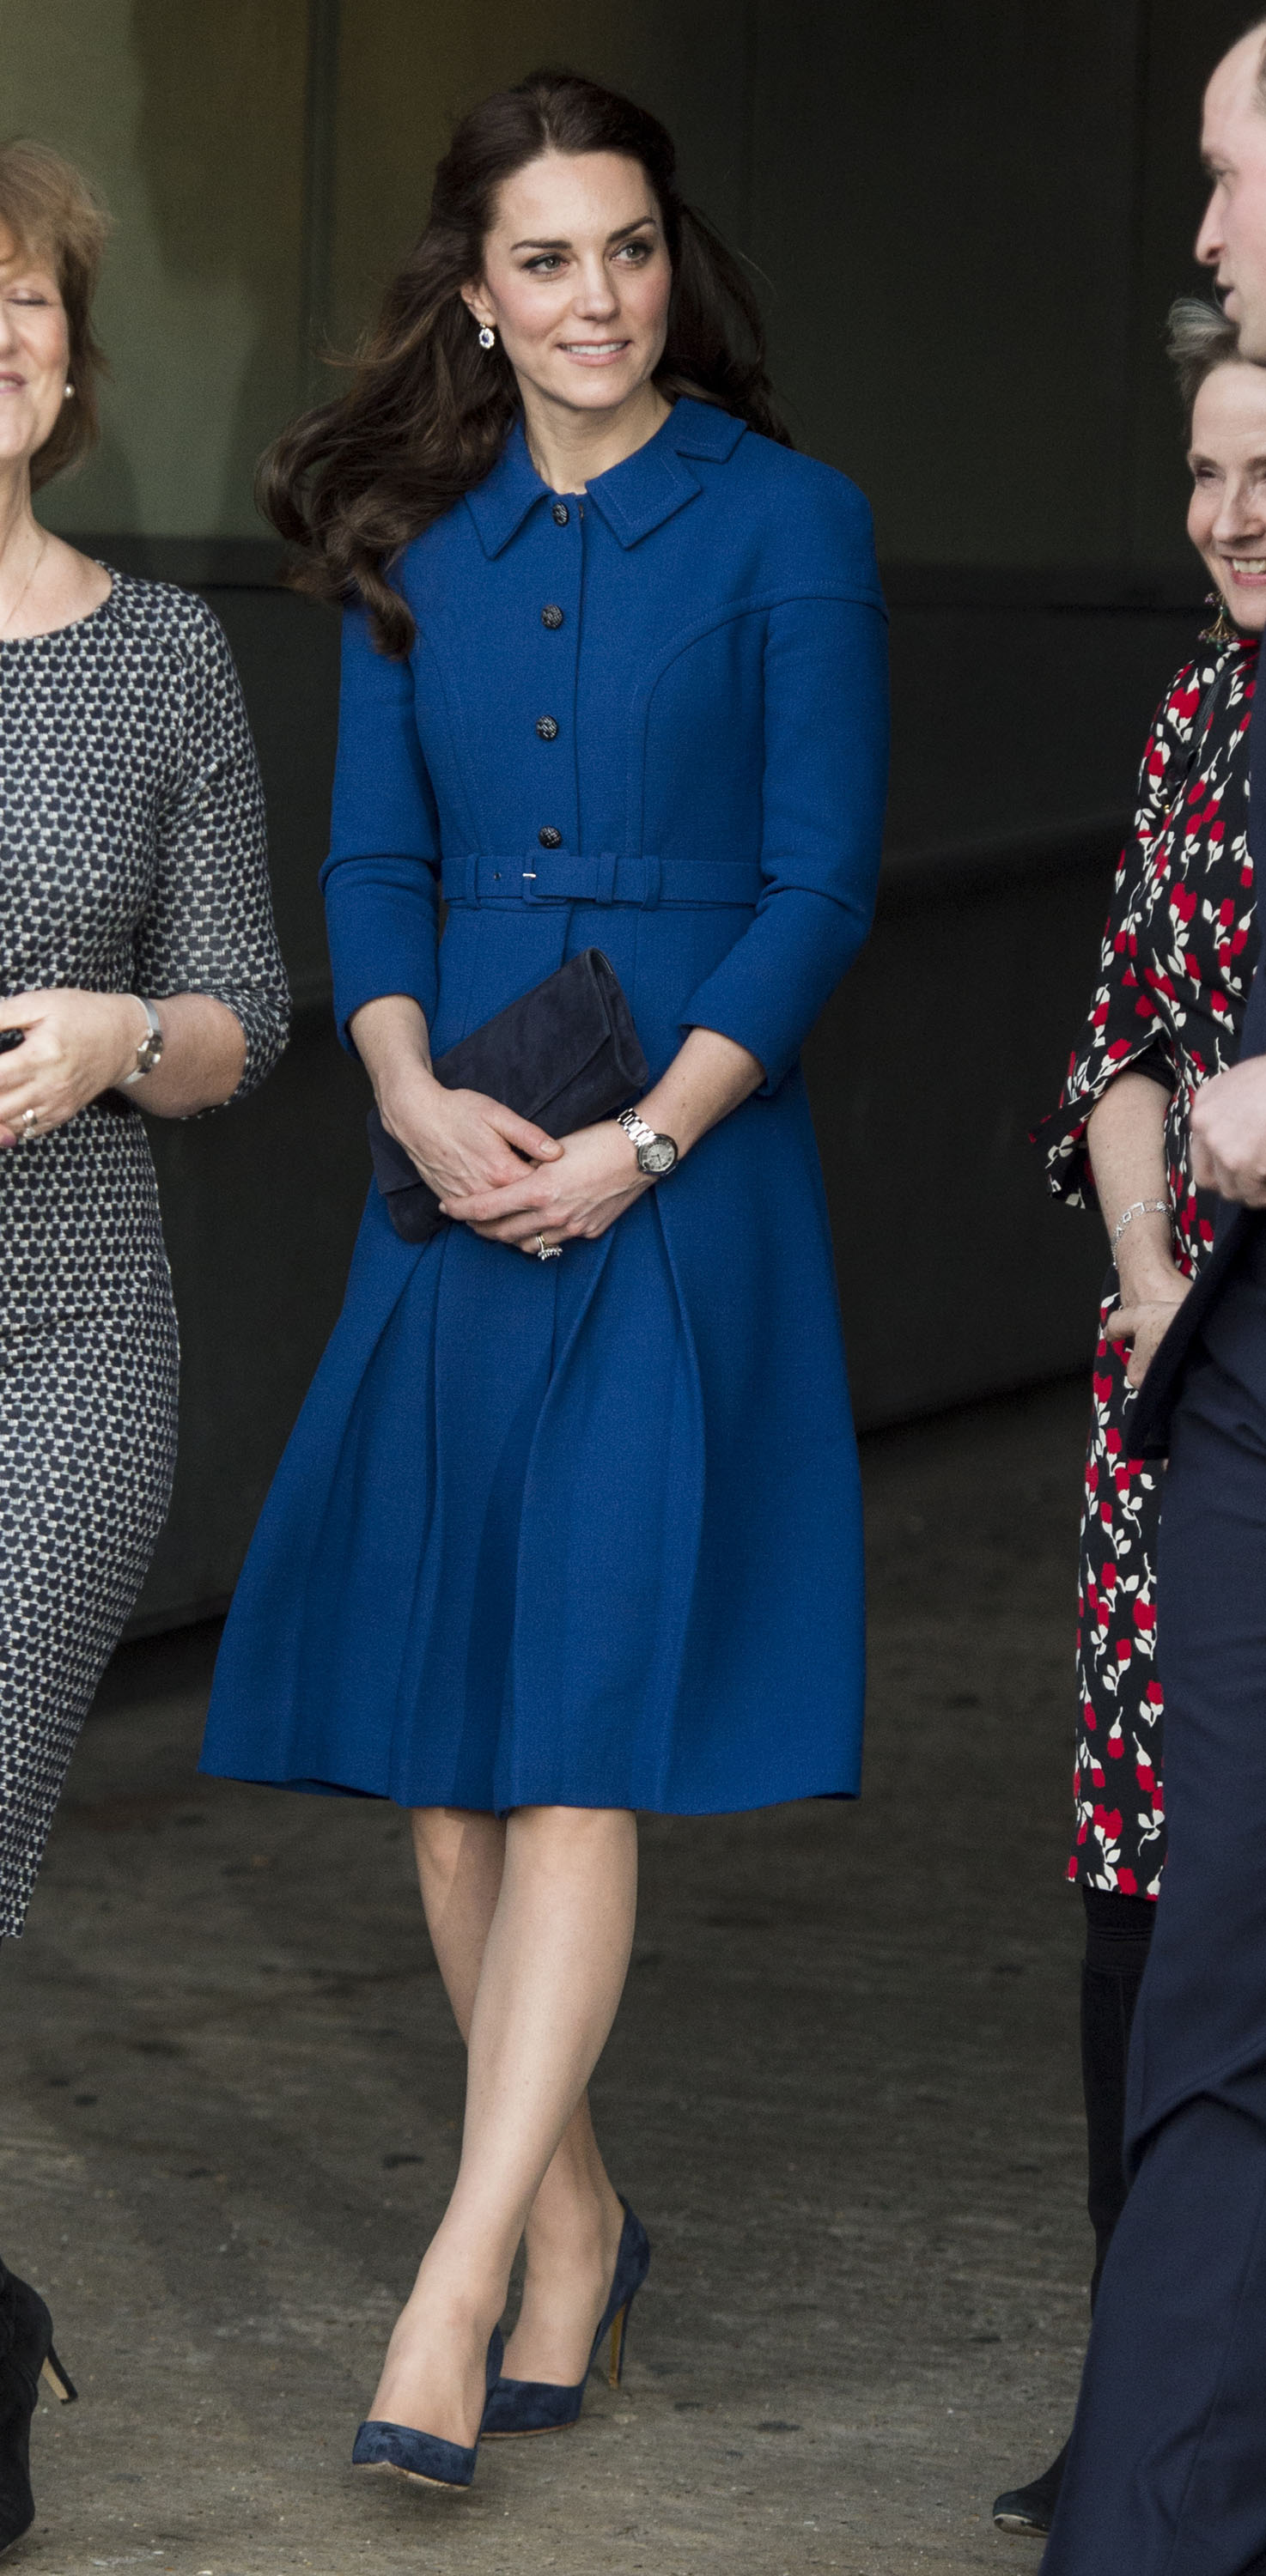 Catherine, Duchess of Cambridge leaves after a visit to the CBUK Stratford in London, England on Jan. 11, 2017.